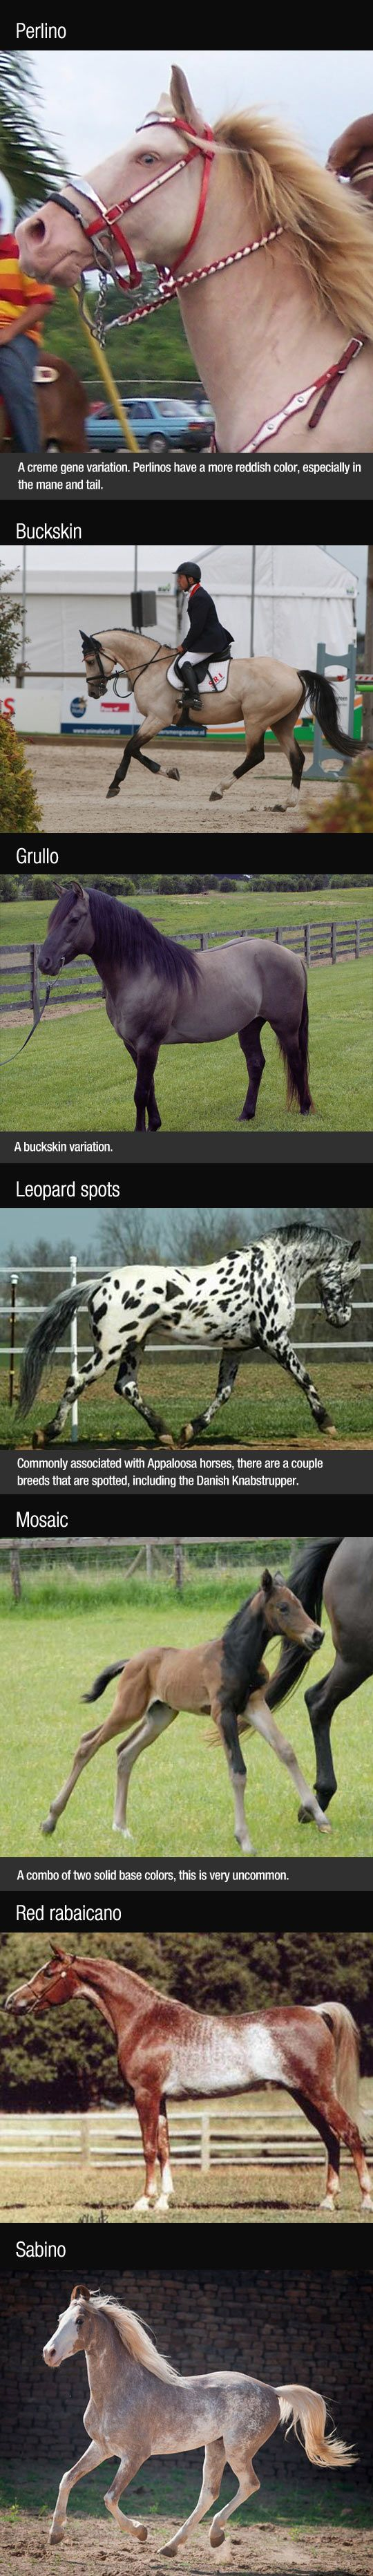 Breathtaking Horse Colors/ please mosaic or grullo but that mosaic!